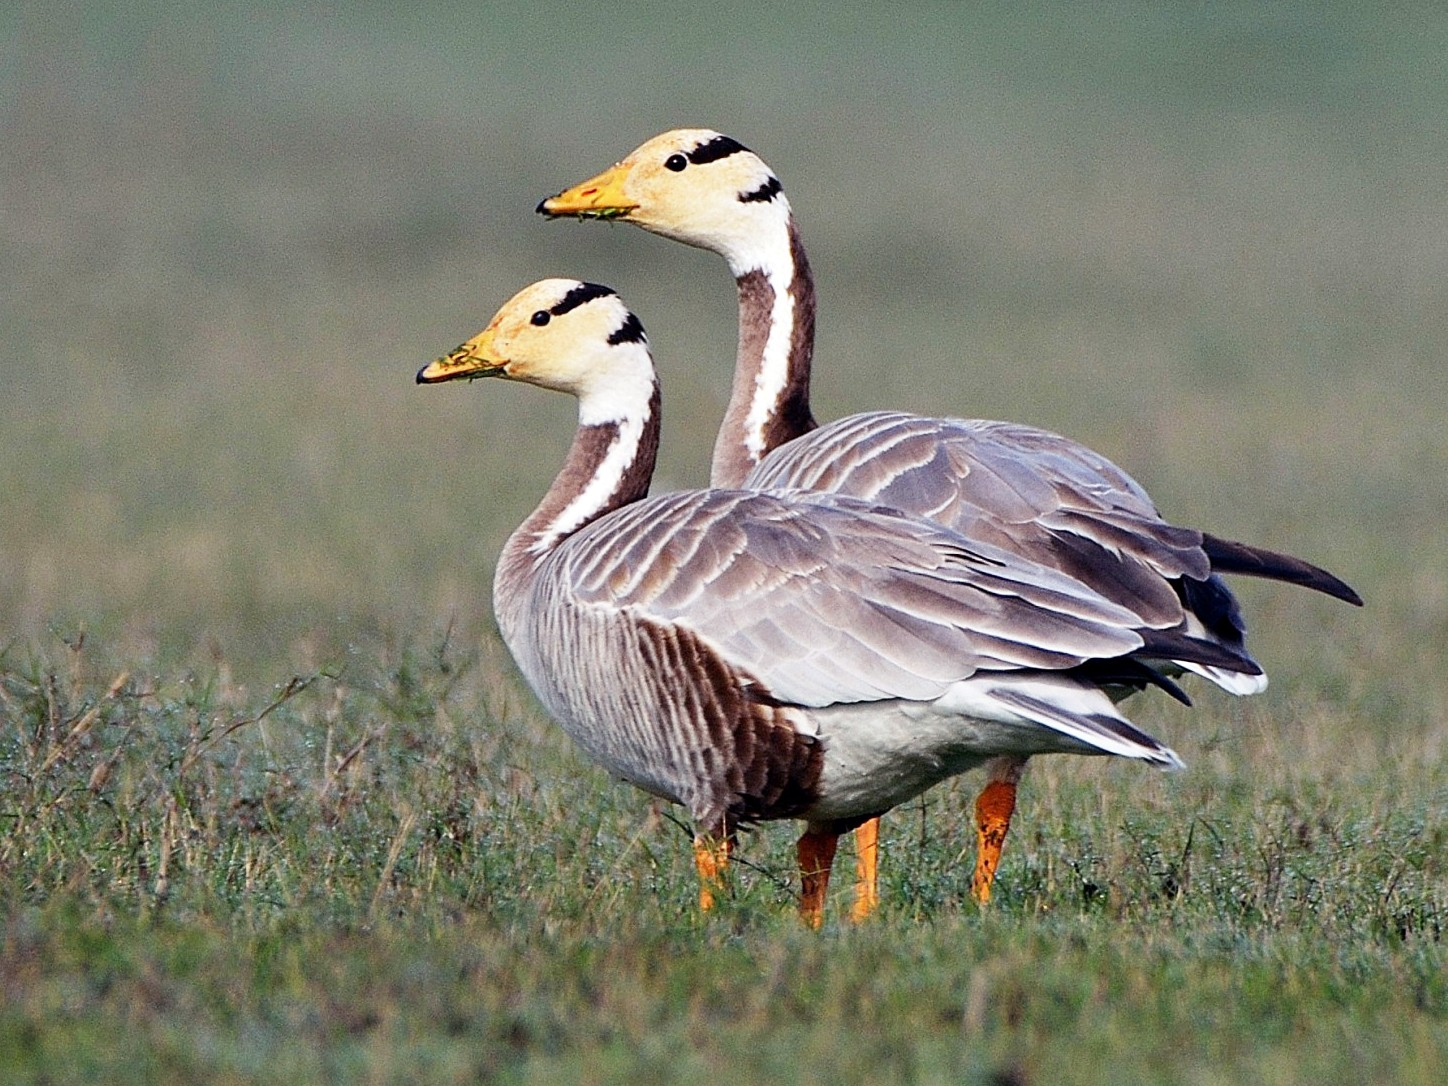 Bar-headed Goose - Bhaskar pandeti